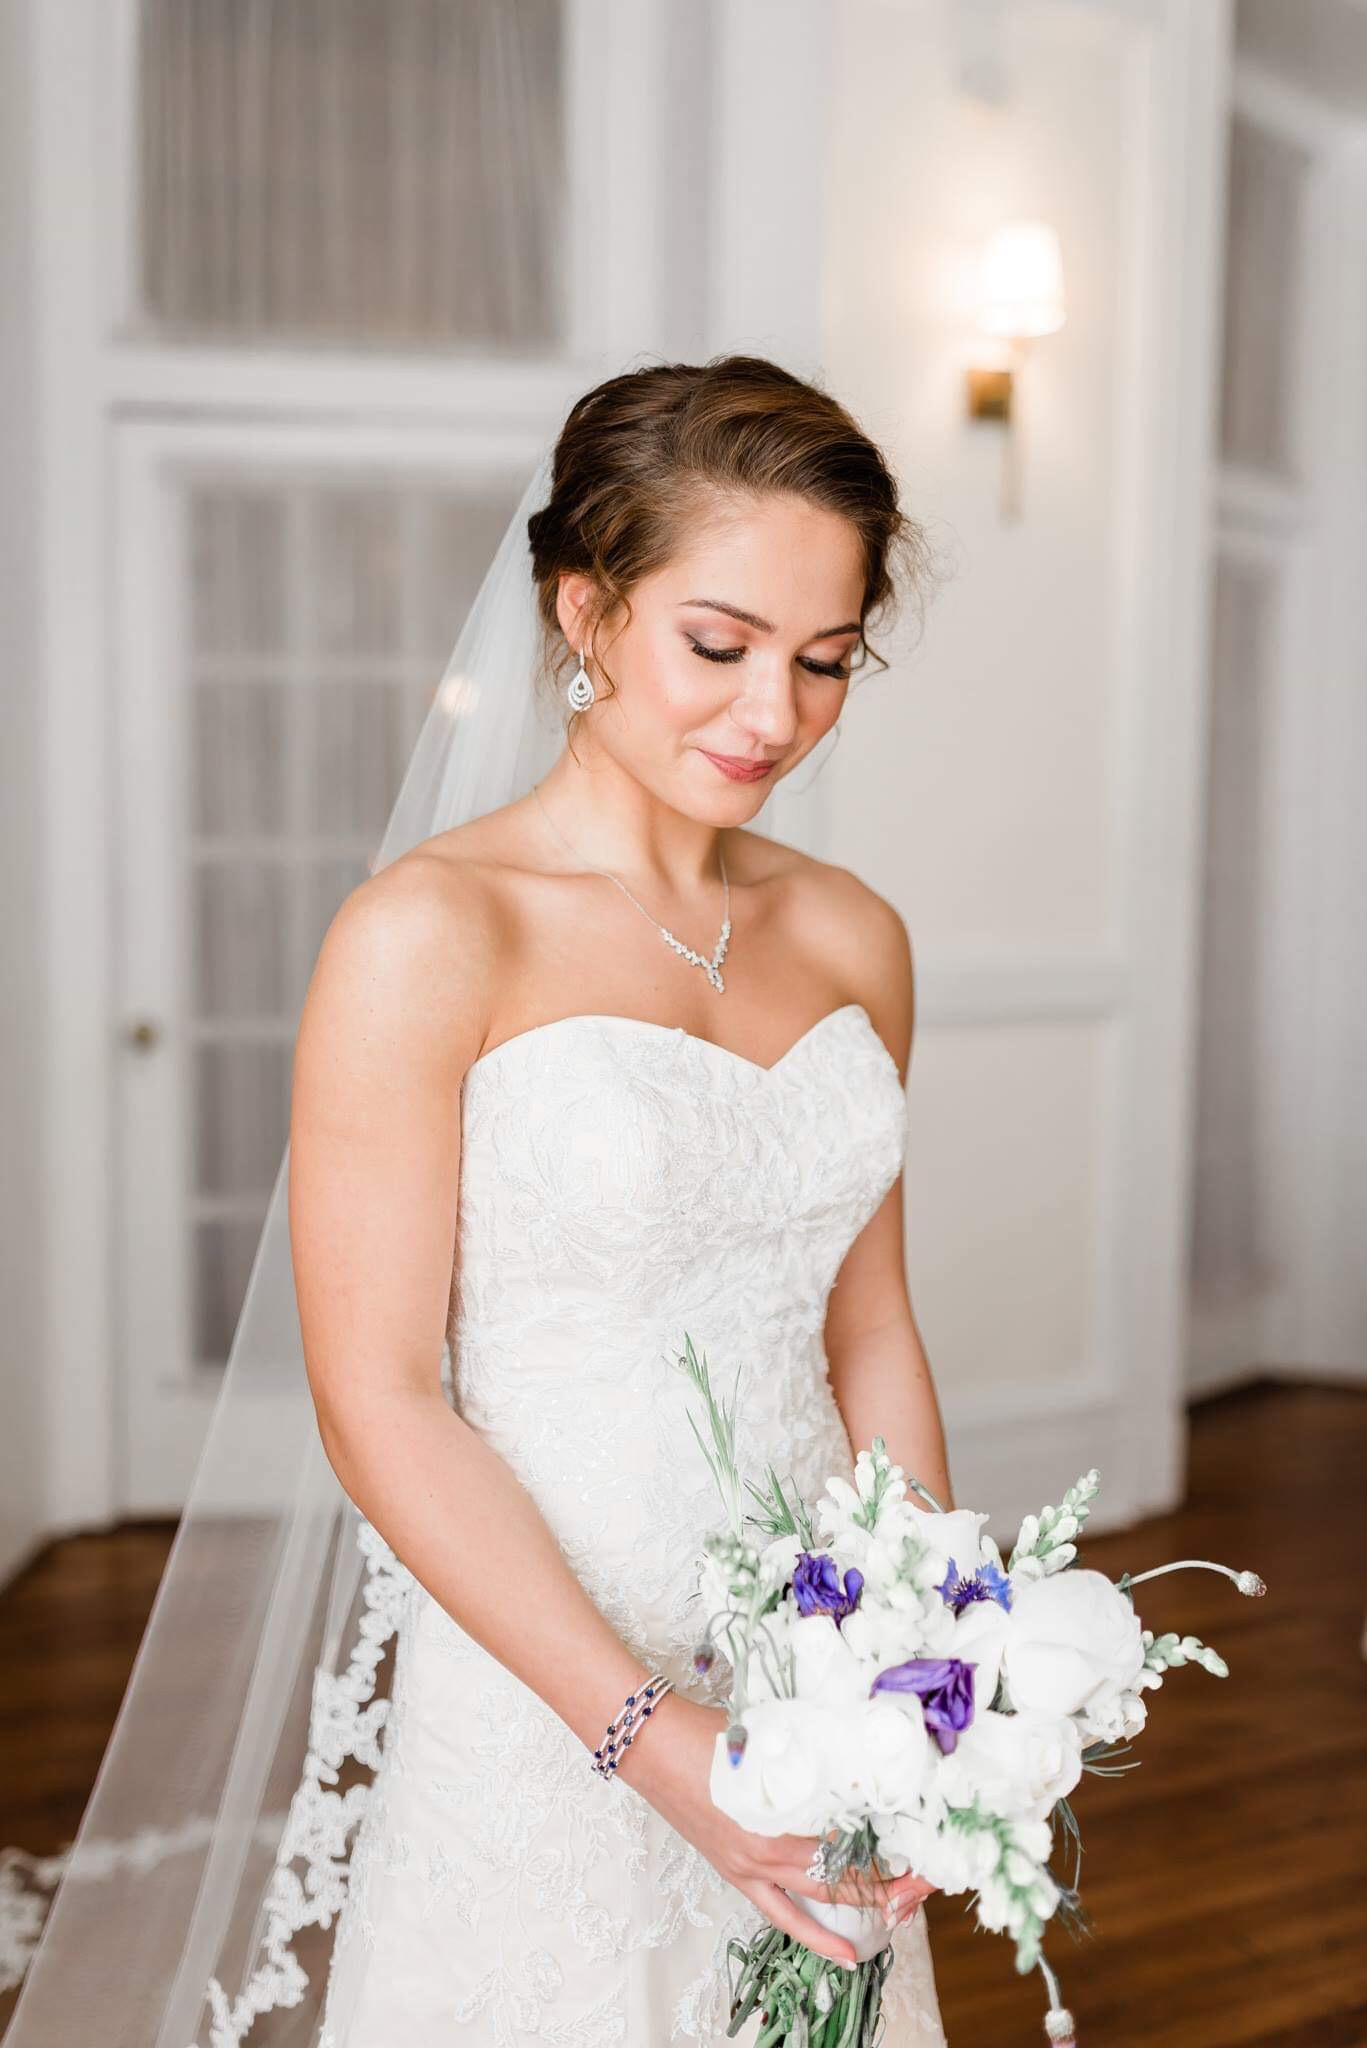 Bridal-makeup-artist-near-me